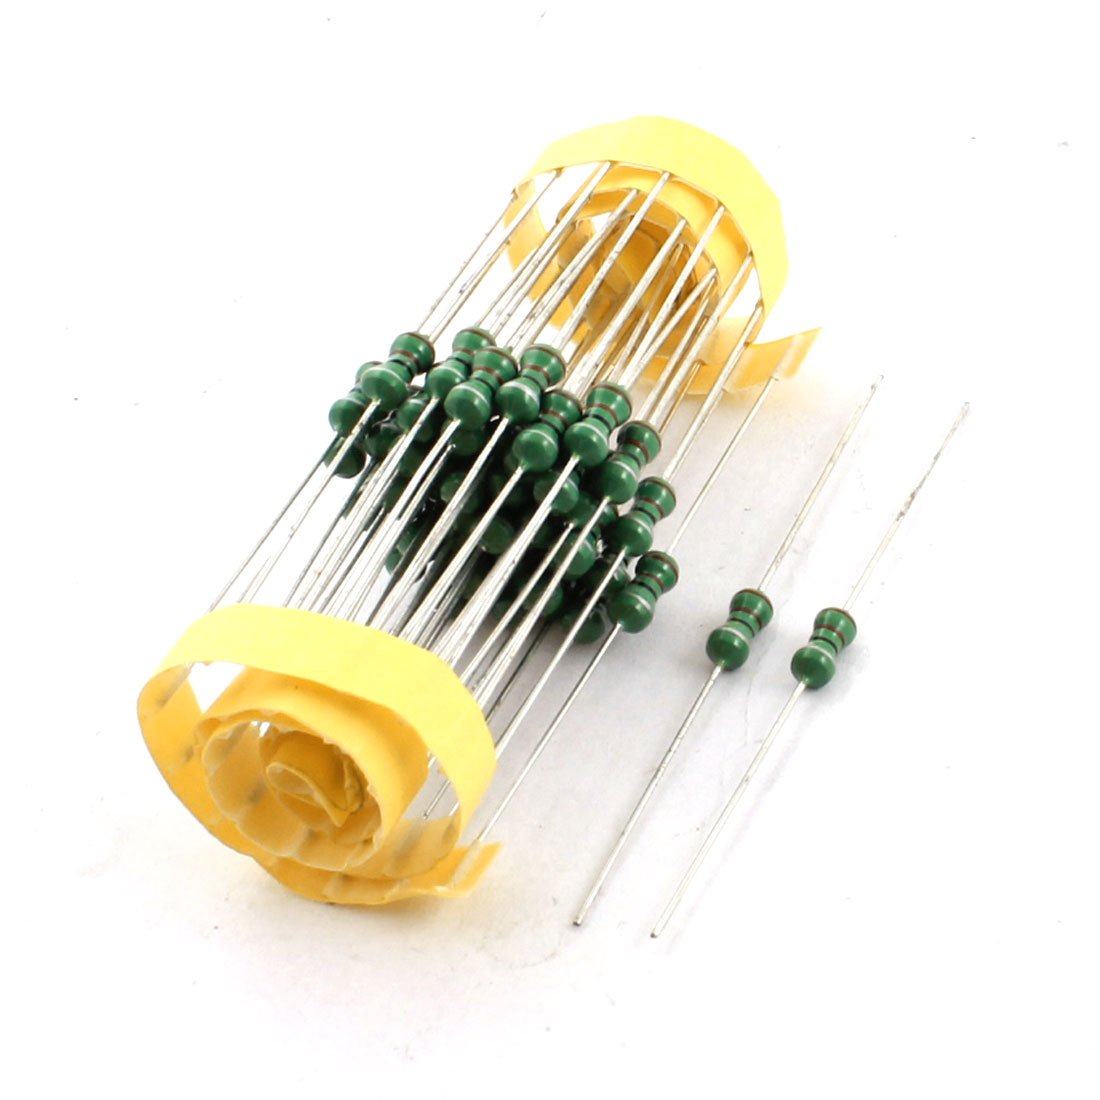 50Pcs Electronic Component 1/2W 22uH 10% Color Ring Inductors 4x10mm